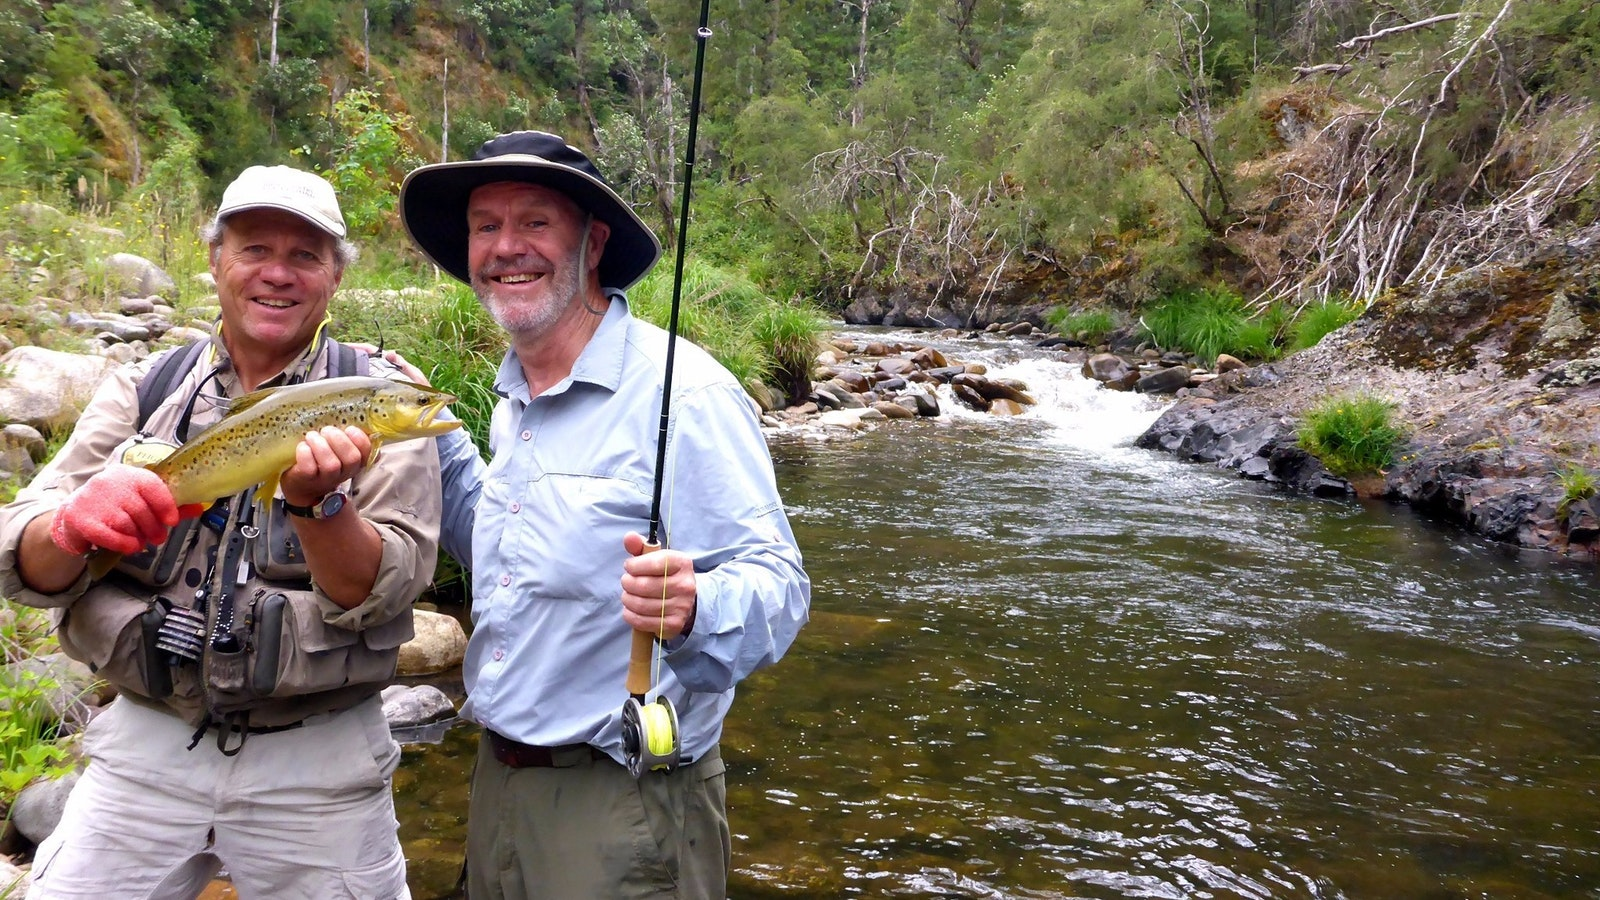 Riverdowns Fly Fishing Guiding and Instruction